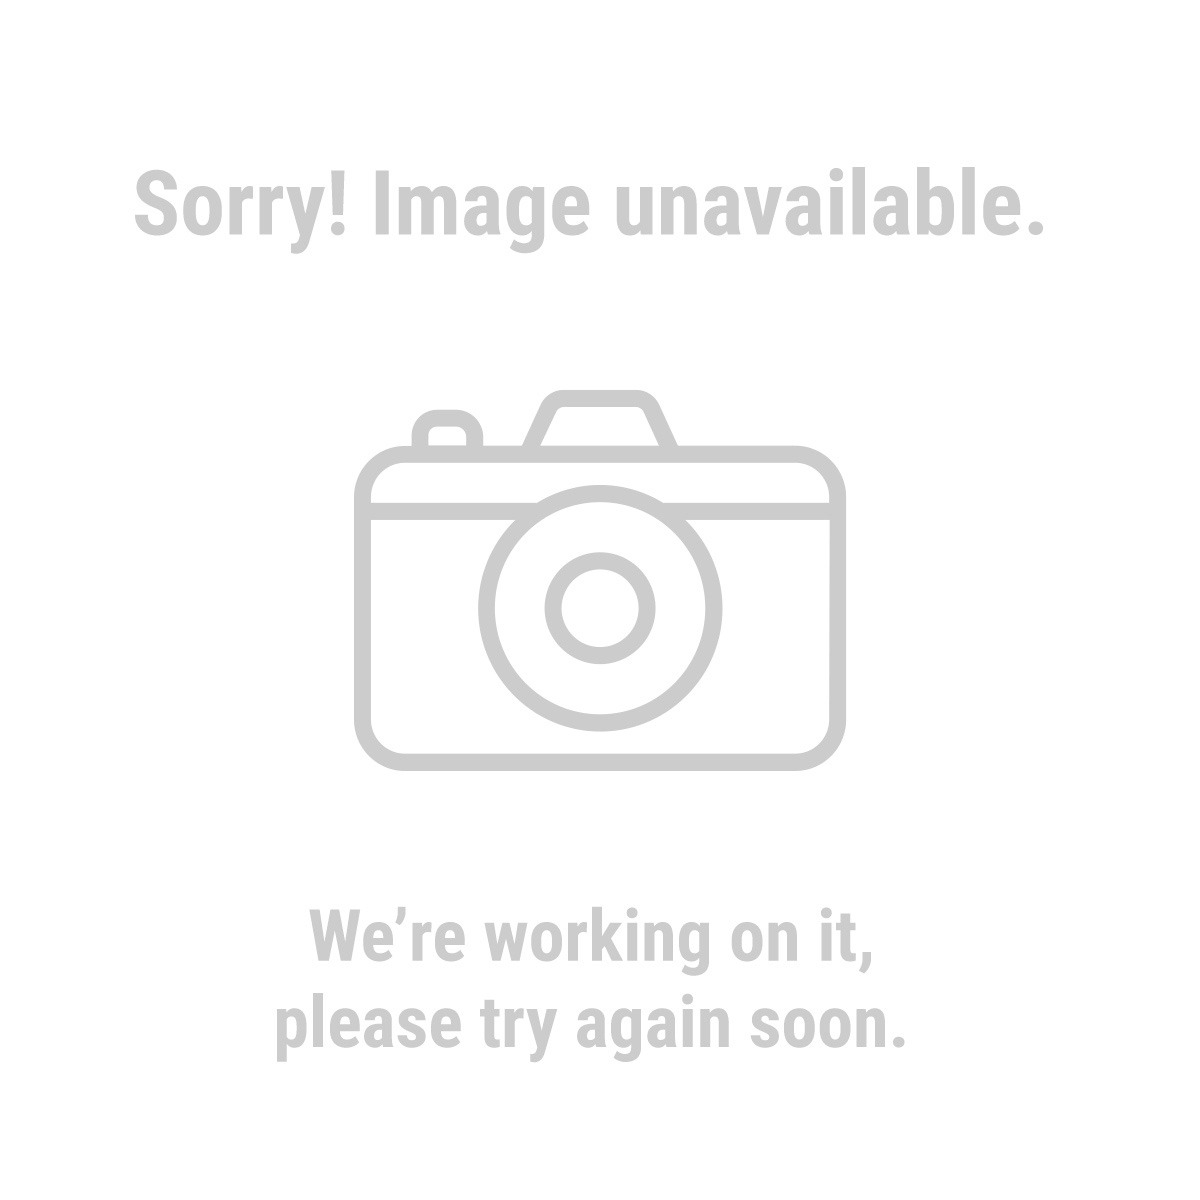 Predator Generators 68525 420cc, 8750 Watts Max/7000 Watts Rated Portable Generator - Certified for California